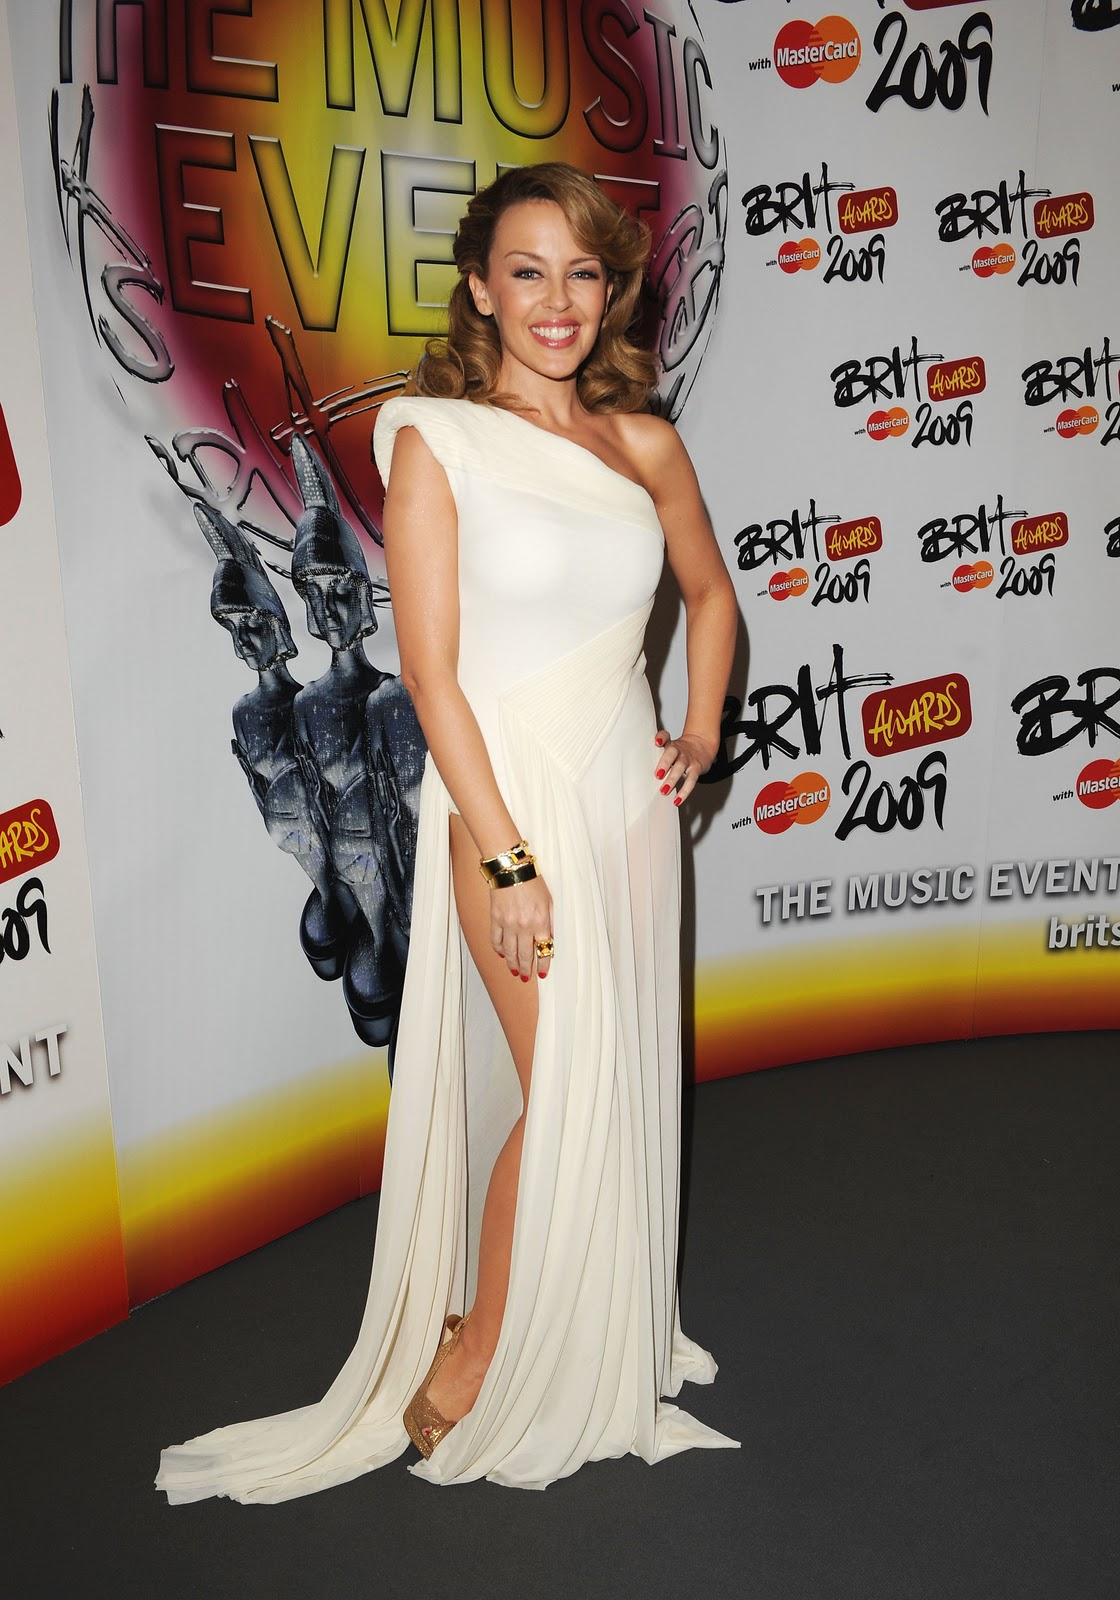 http://4.bp.blogspot.com/-kKdLdbspDmo/TWP5VR43xHI/AAAAAAAADkg/HqqFMvMk7Zo/s1600/kylie-minogue-see-thrugh-brit-awards-2009-press-room-london.jpg